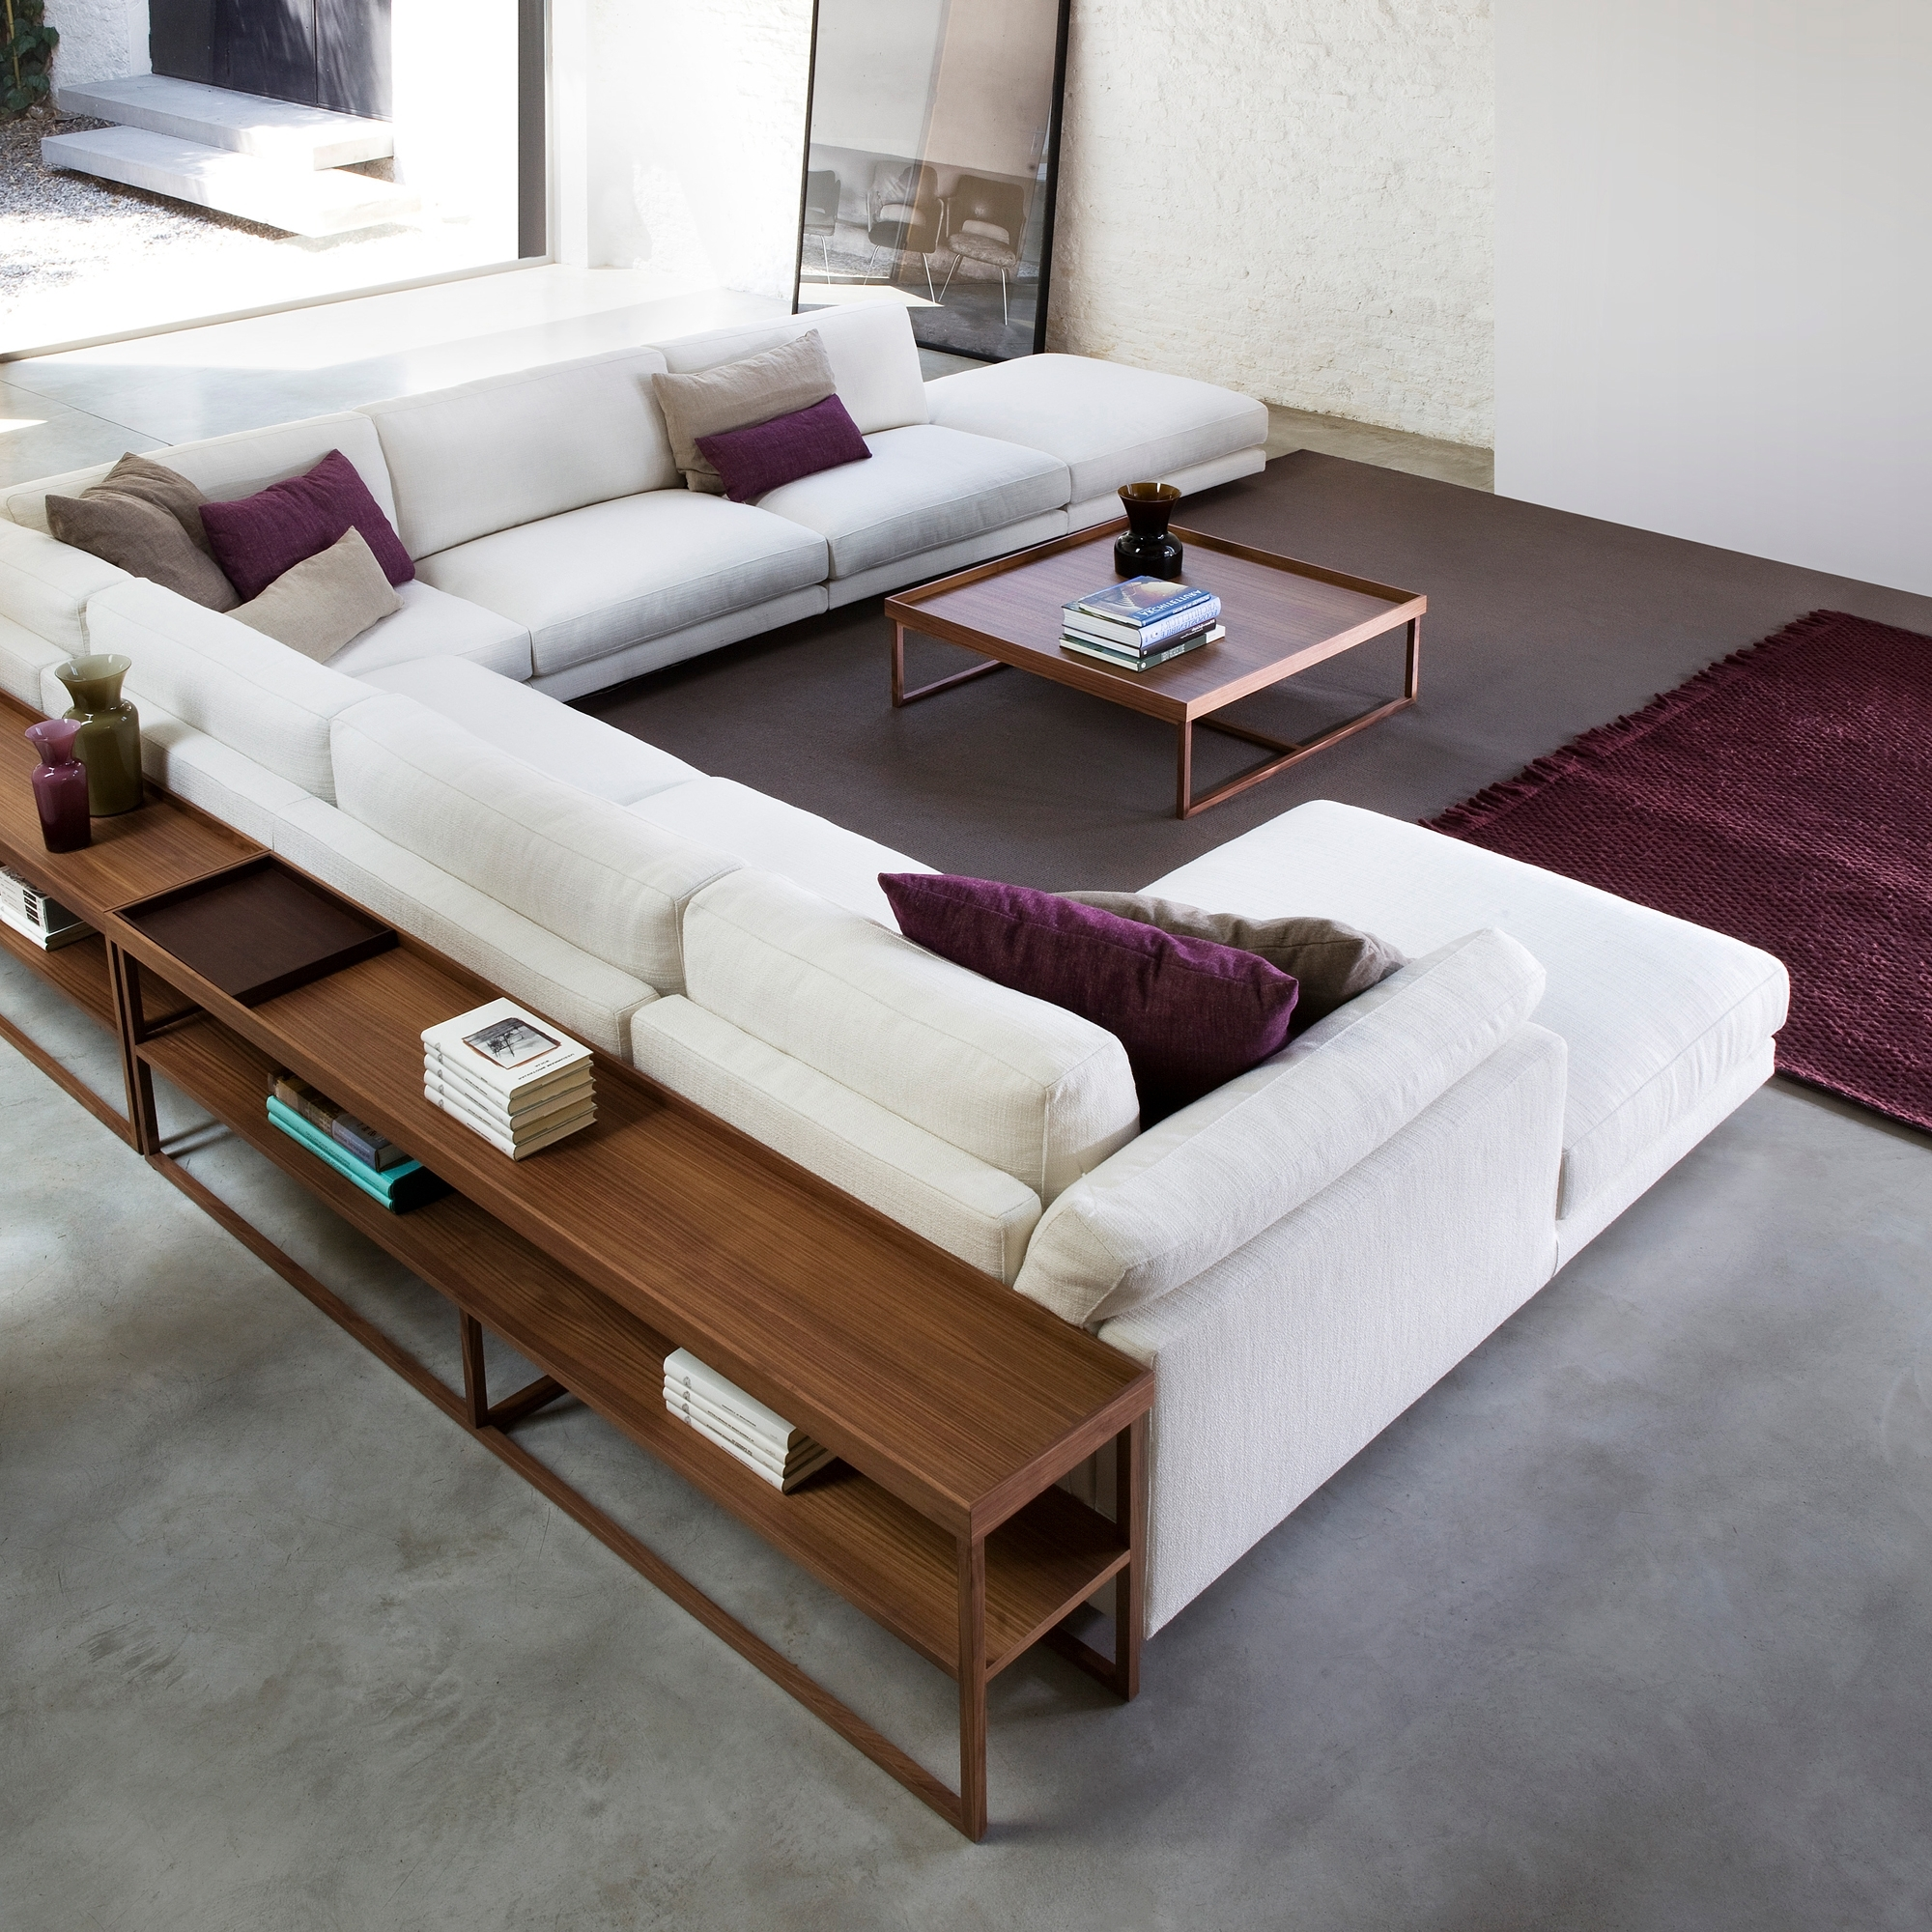 Sofa Unforgettable Back Table Images Inspirations Console Inside Latest Sofas With Consoles